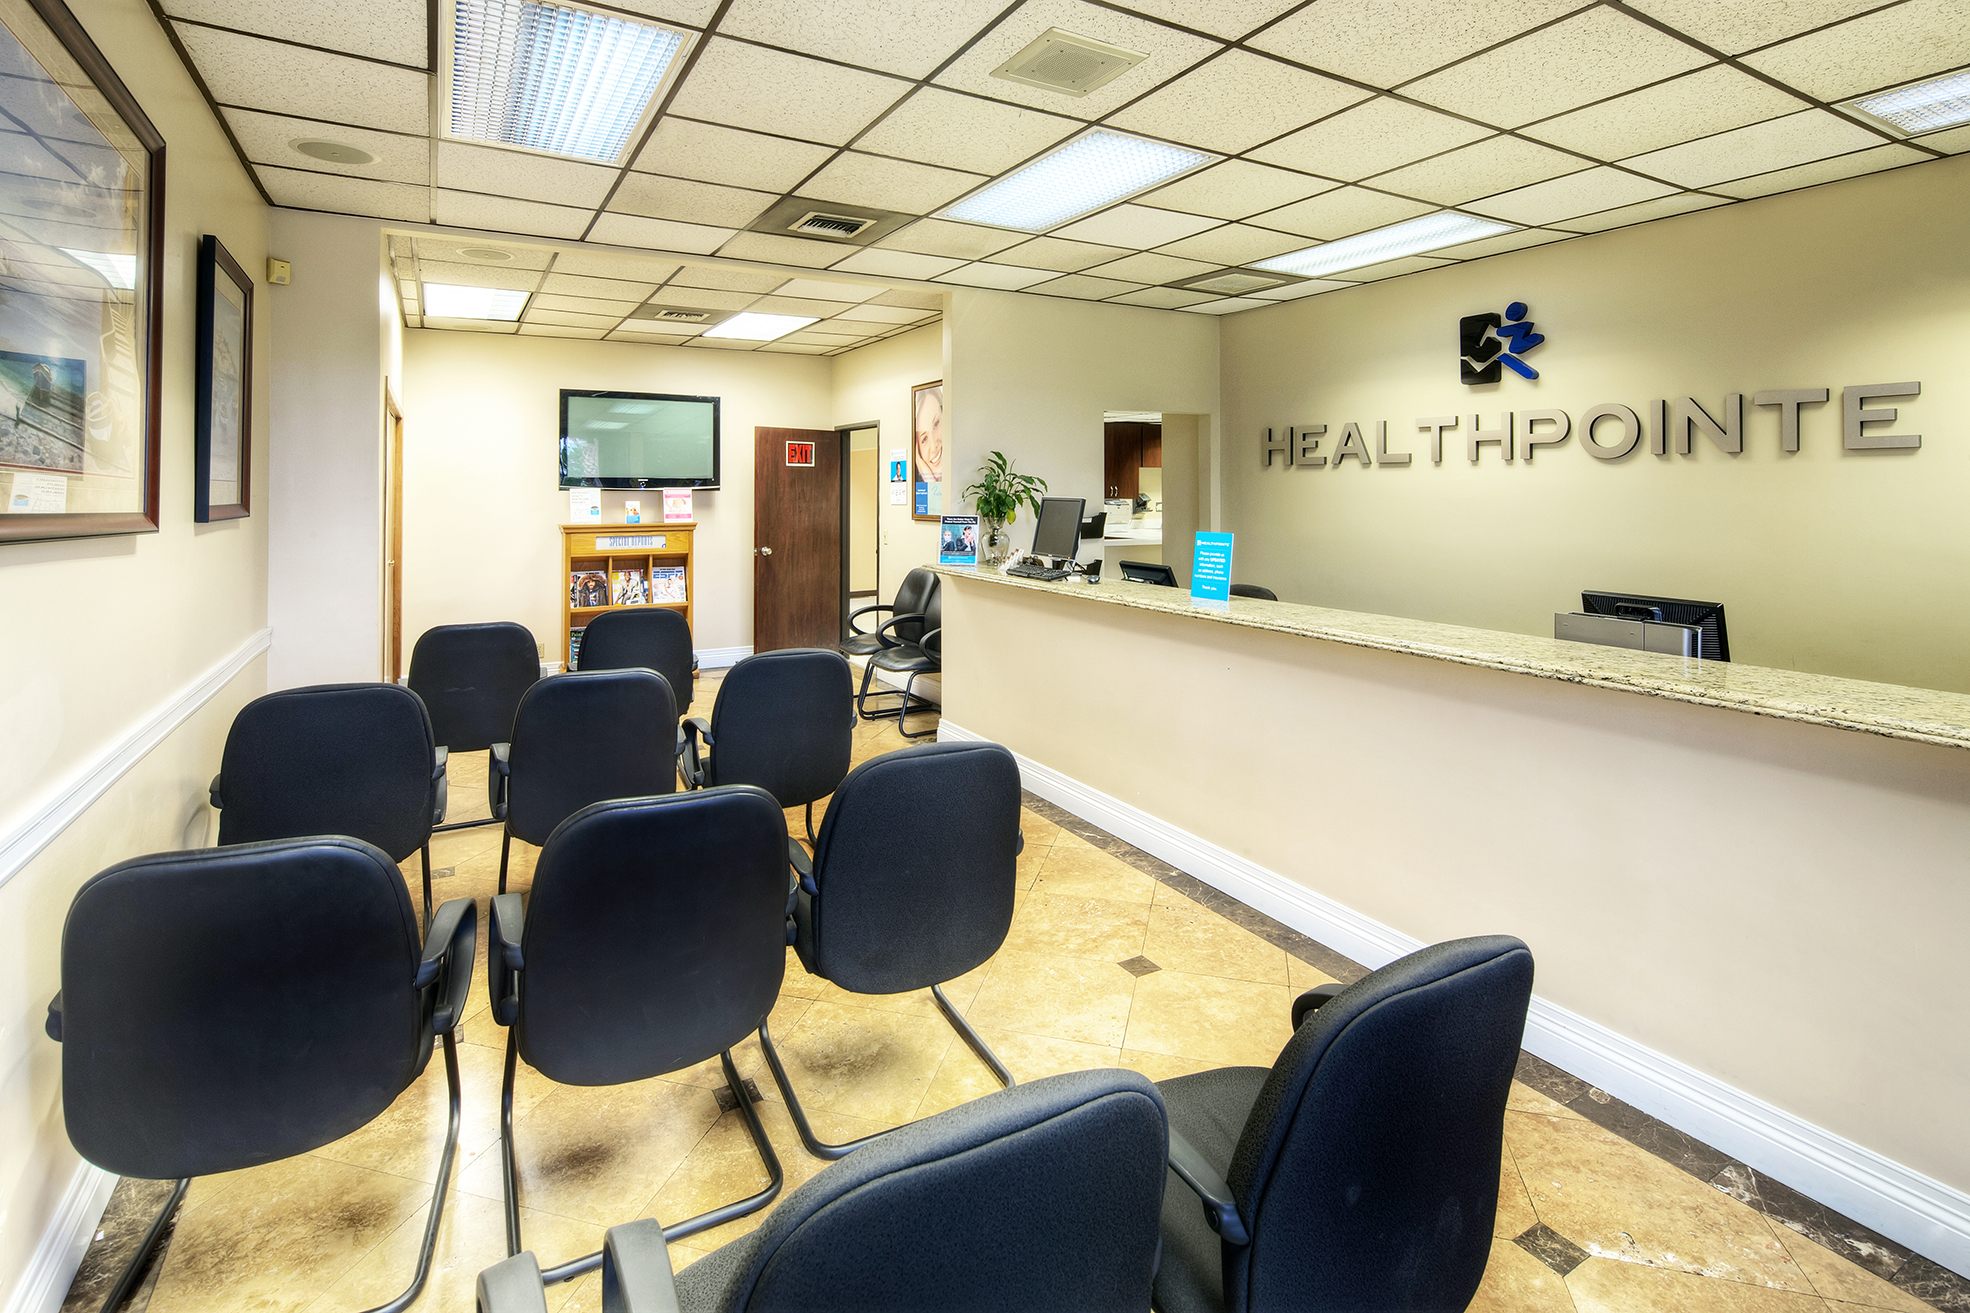 The Covid Recovery Program in Irwindale